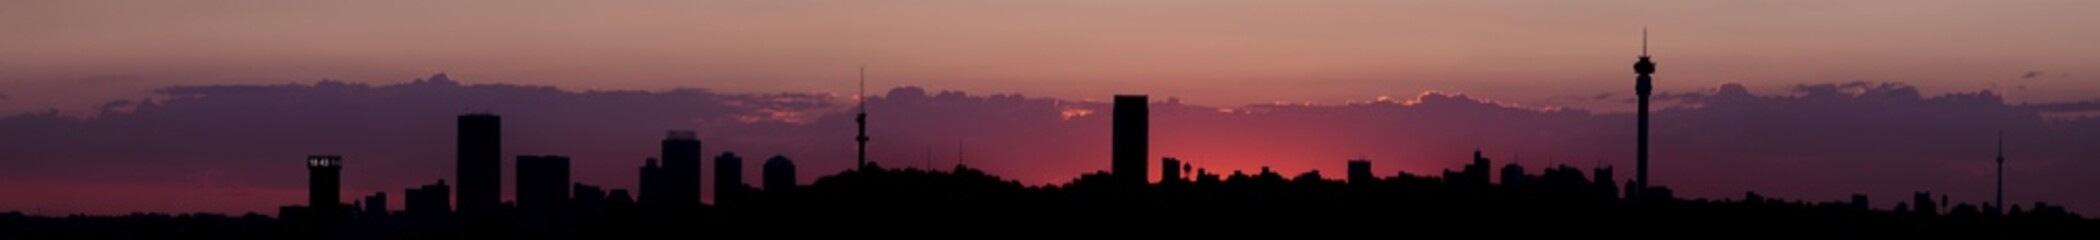 Sunset Johannesburg city